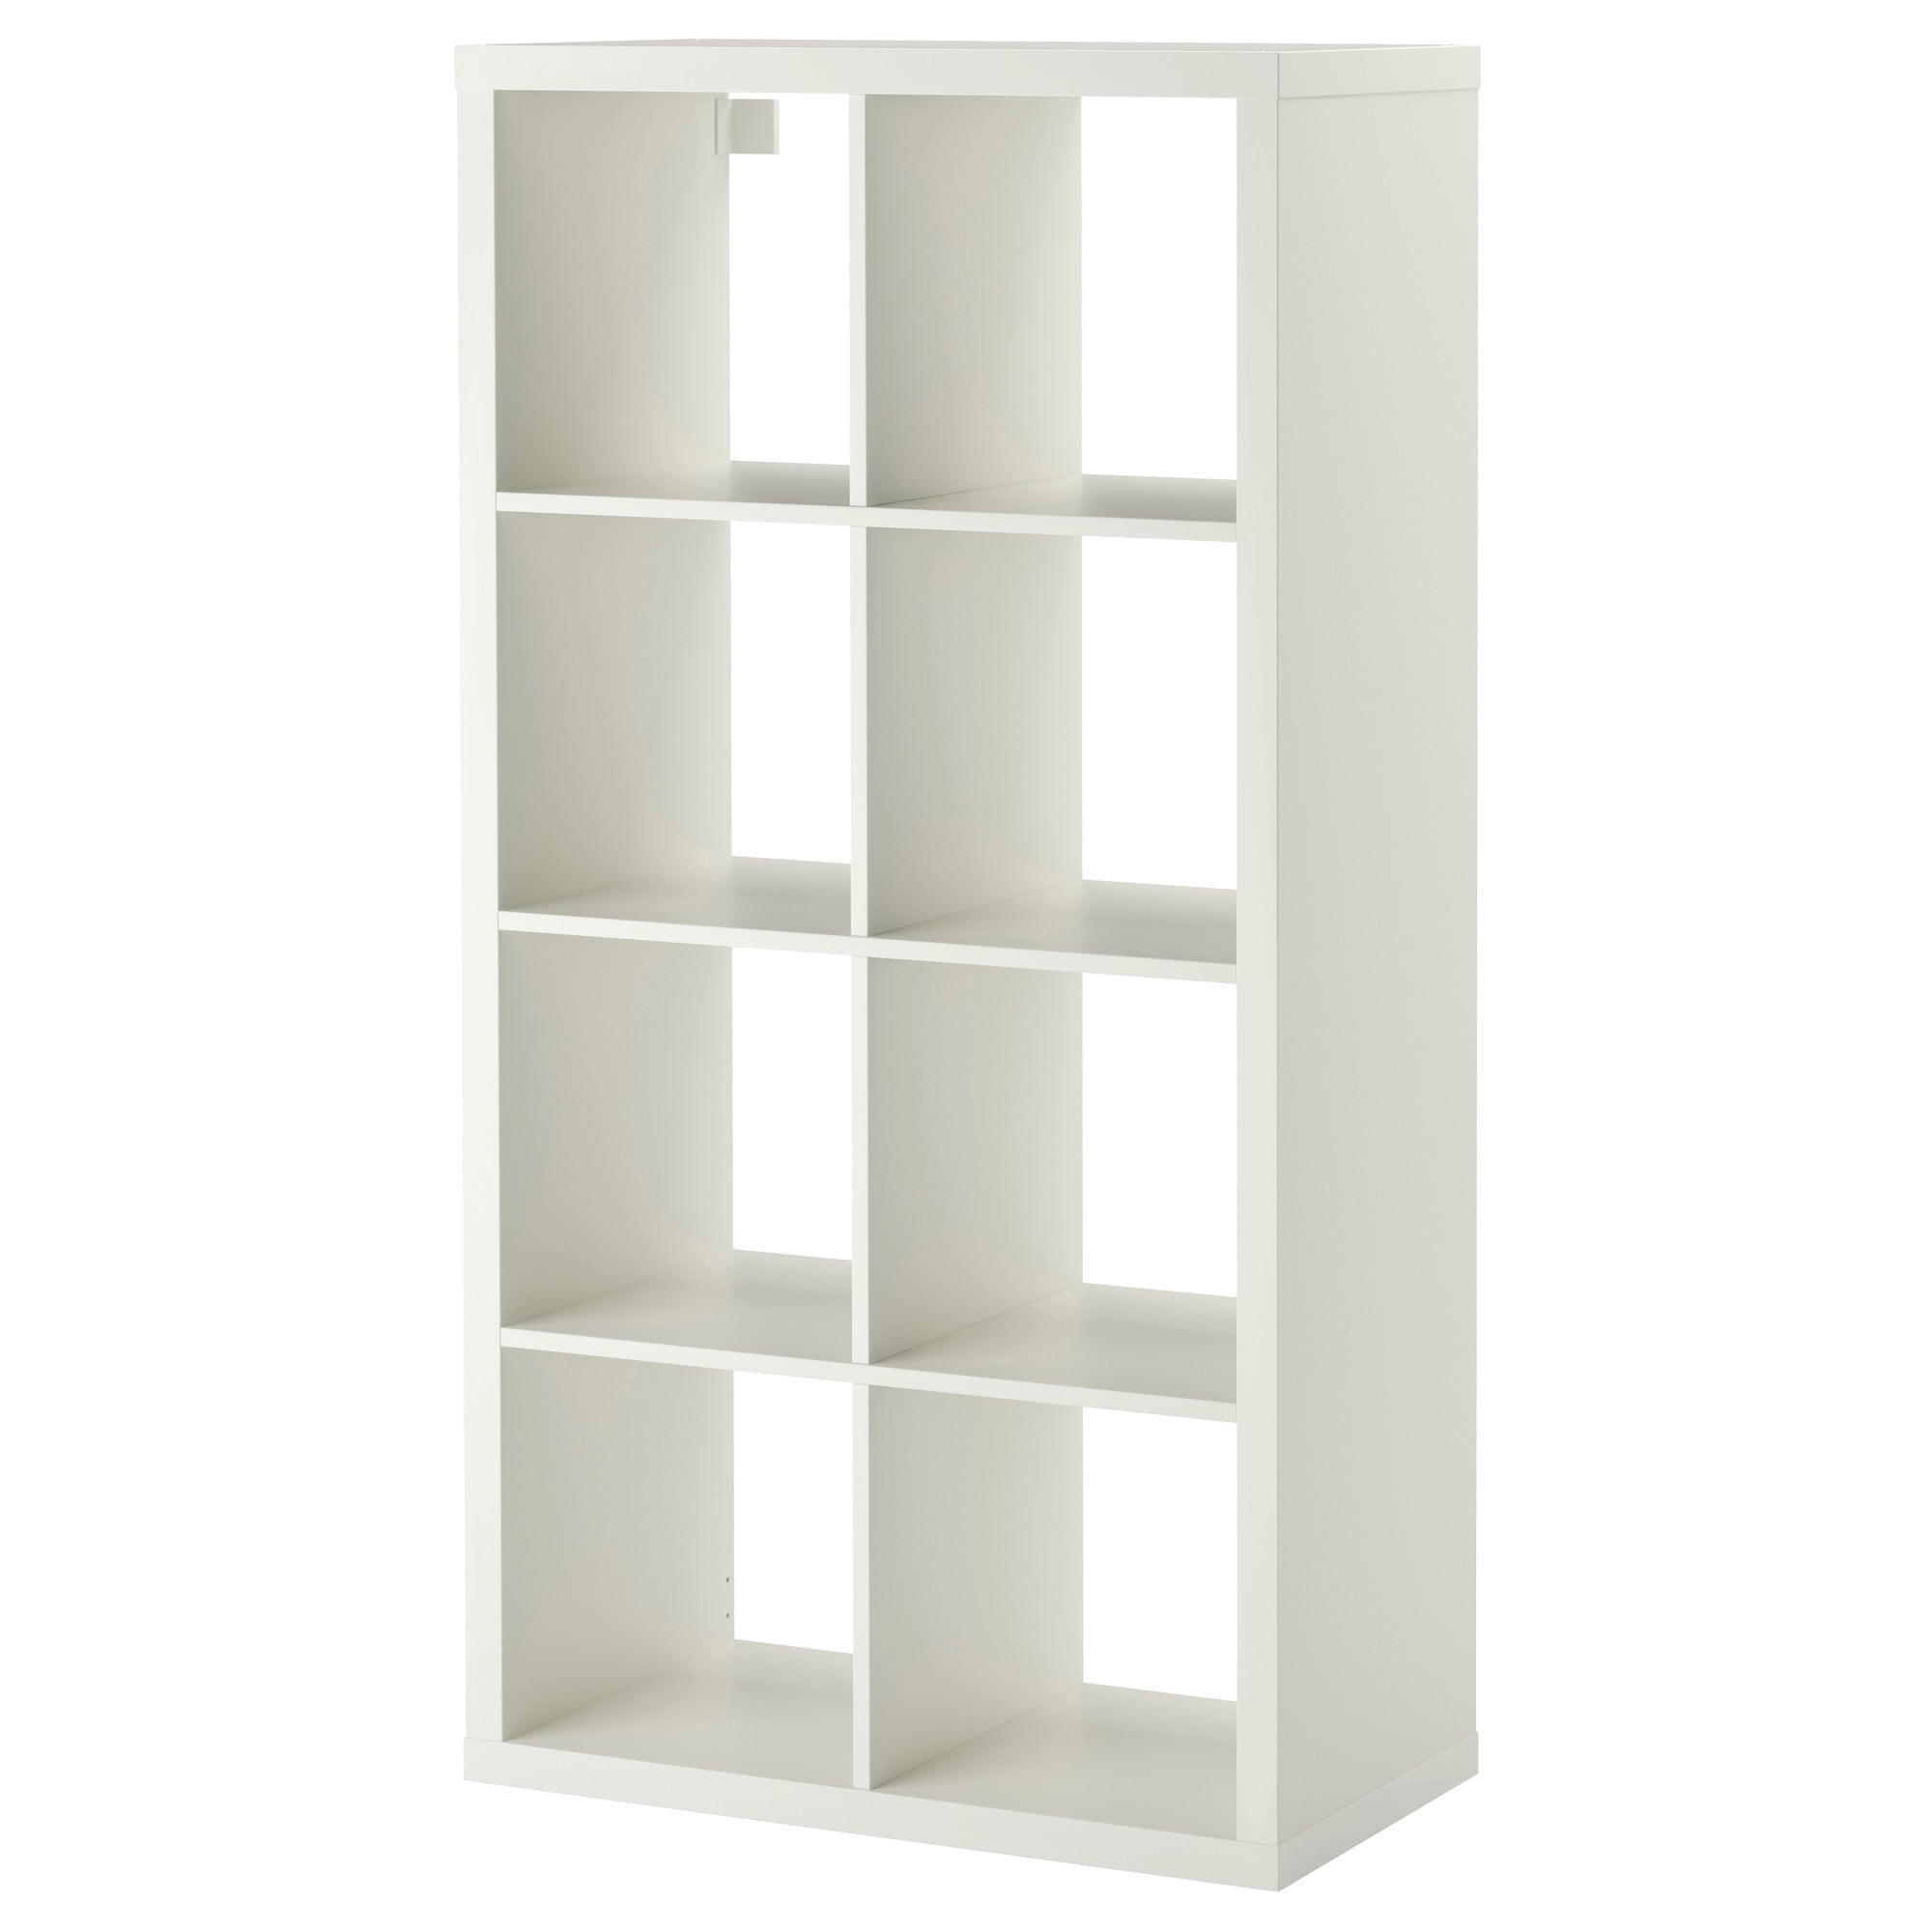 Design Display Bookshelf kallax shelf unit white ikea